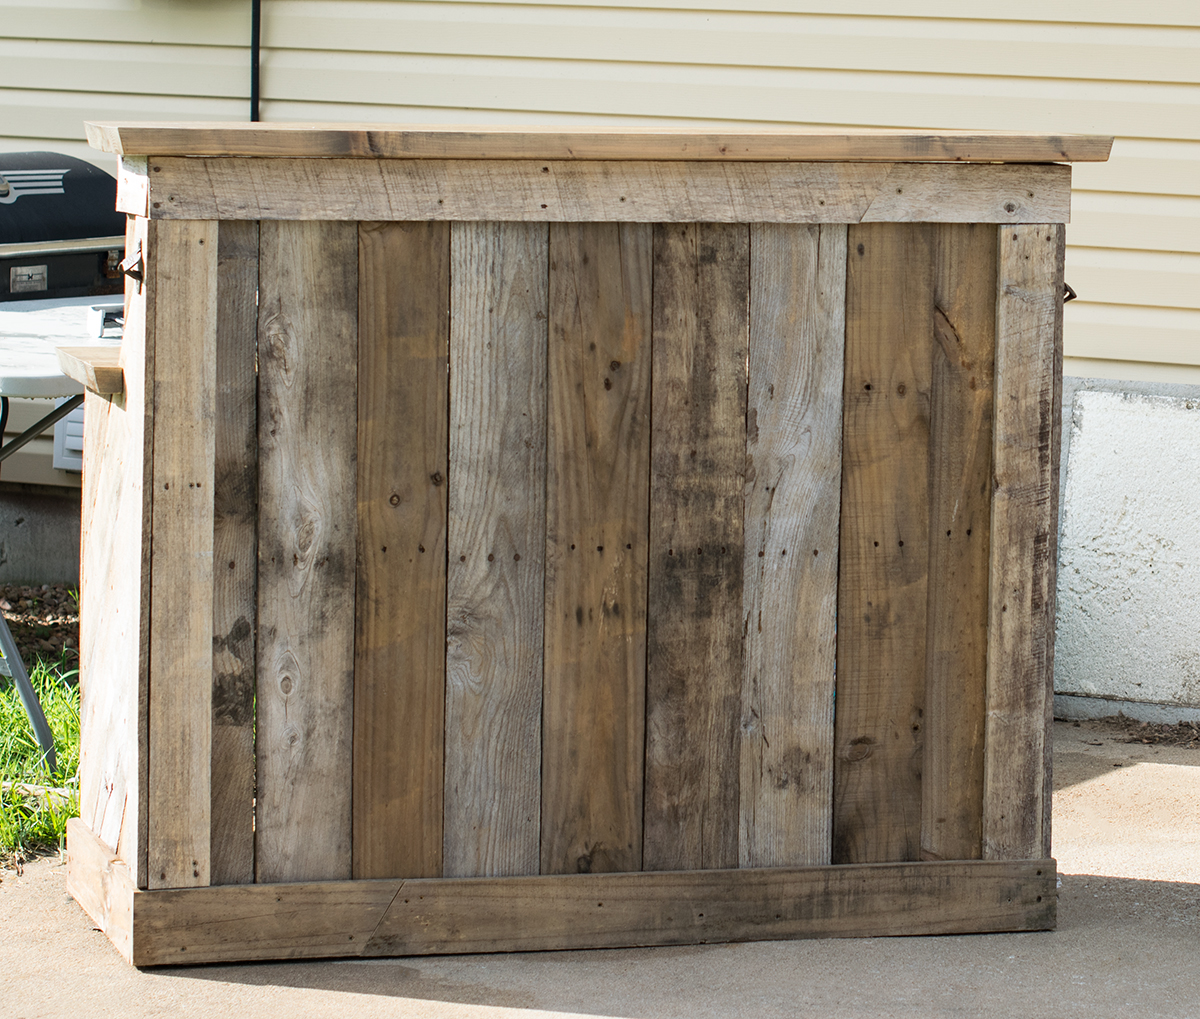 Outdoor pallet bar that took only one day to complete and just a few pieces of treated lumber from the store and some screws. everything else was free